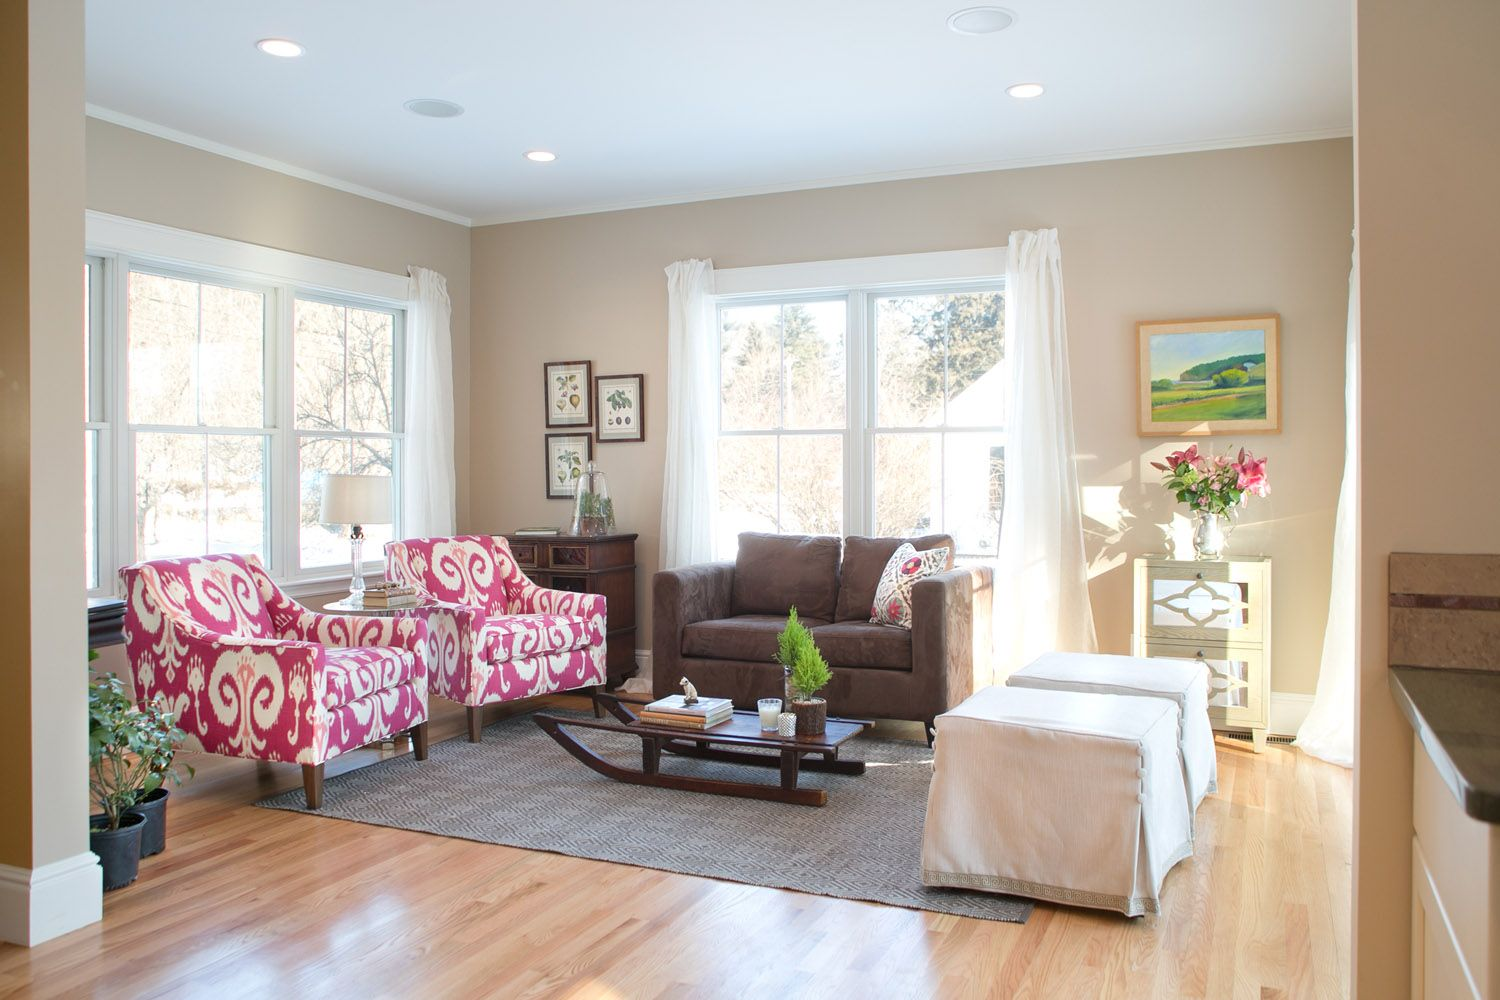 Brown Paint Living Room Walls Wall Decors For One Of Best Colors To With Soft Pastel White Ceiling And Light Hardwood Flooring Chocolate Fabric Couch